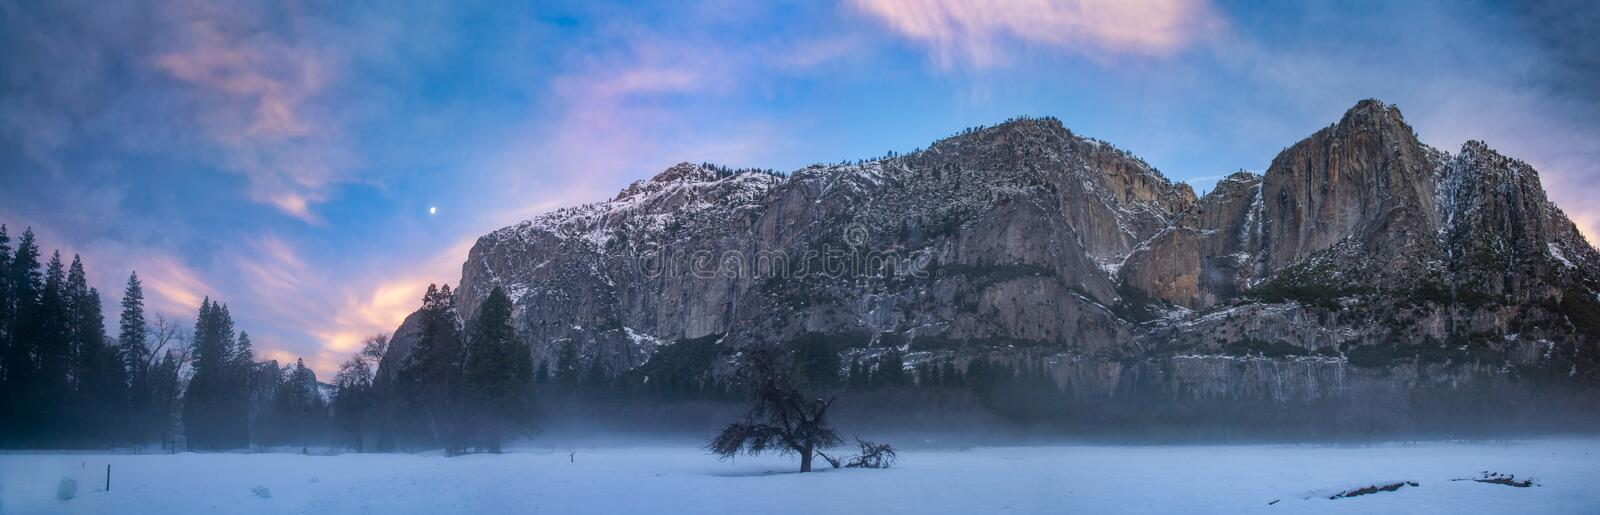 Yosemite at dawn with moon, clouds and thin fog. This is a photograph of foggy morning at Yosemite with colorful clouds and moon stock photography